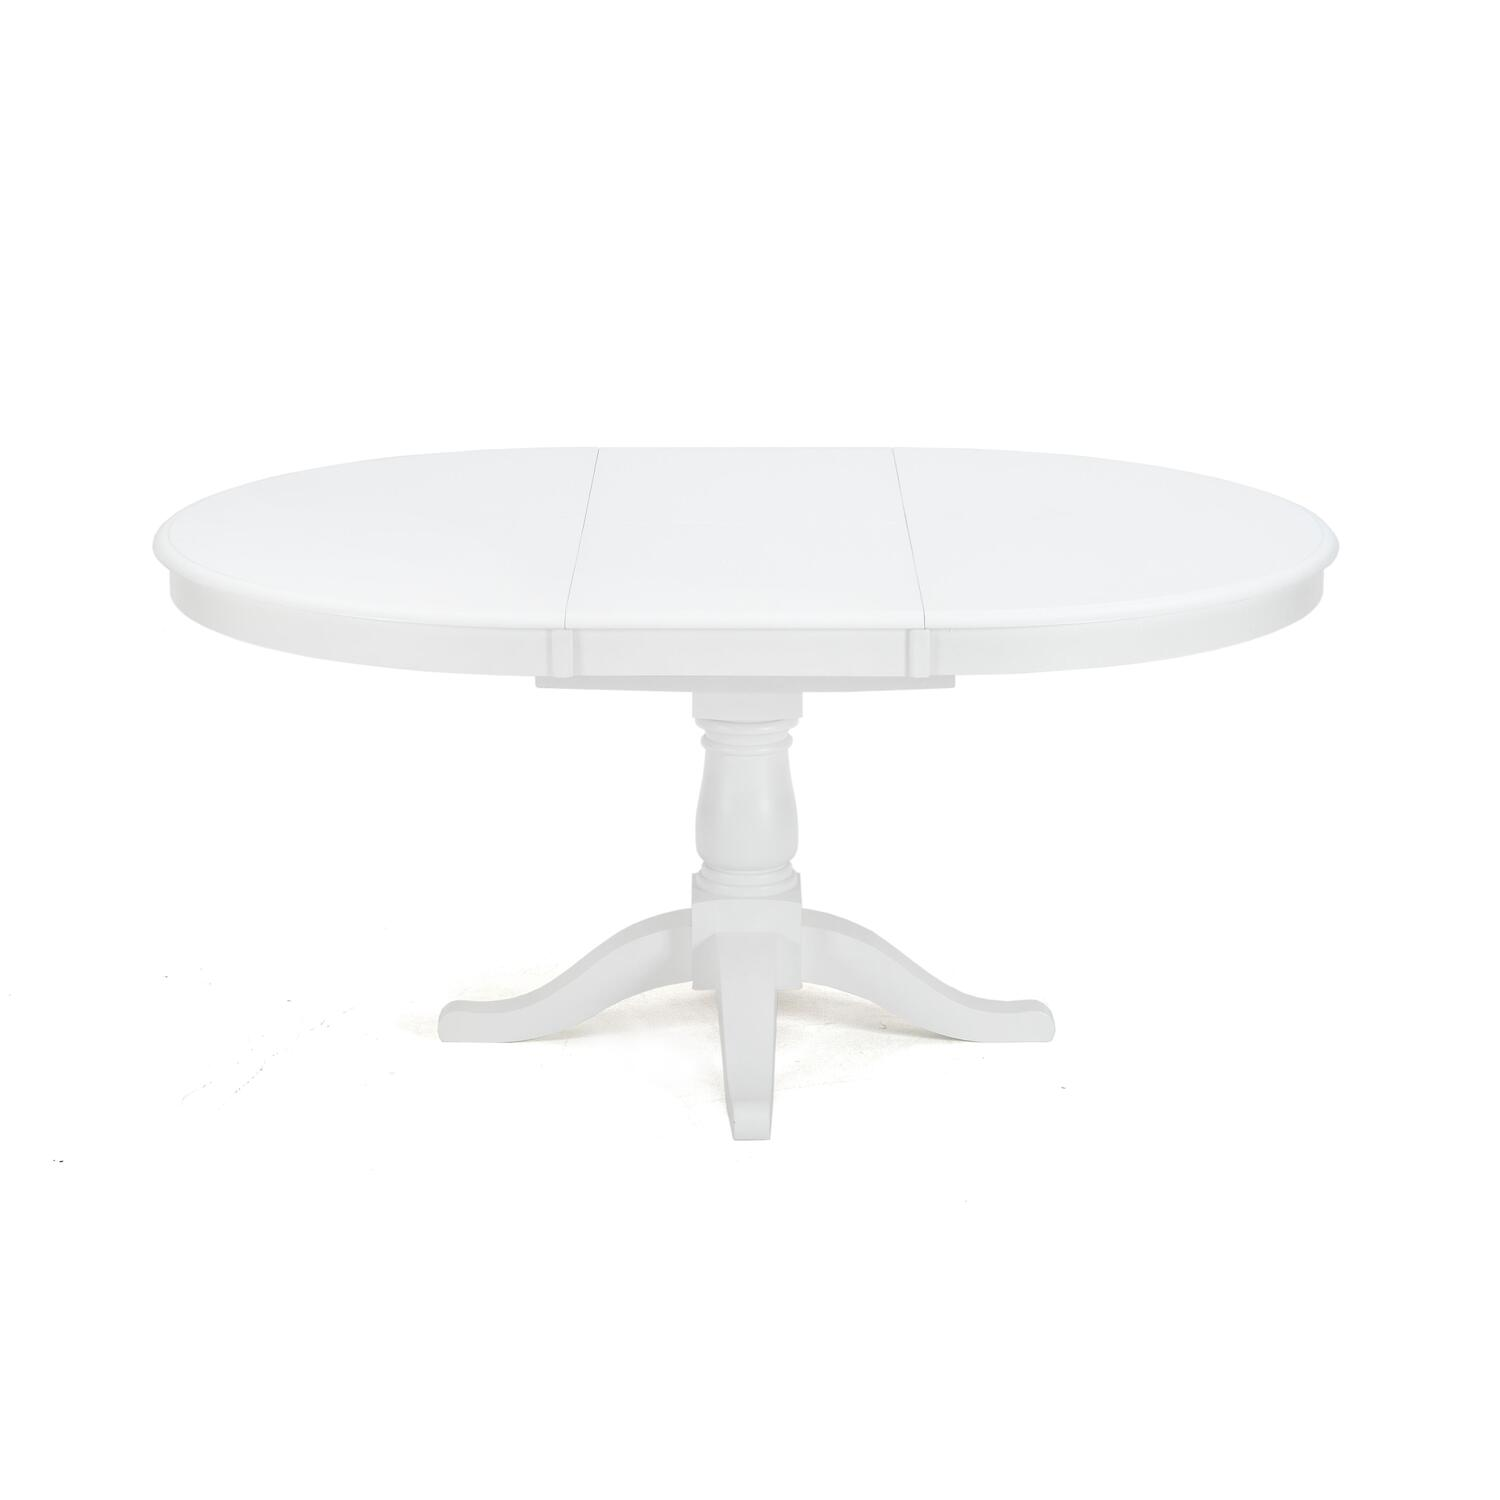 Jofran Casper White Finished Round To Oval Dining Table By OJ Commerce